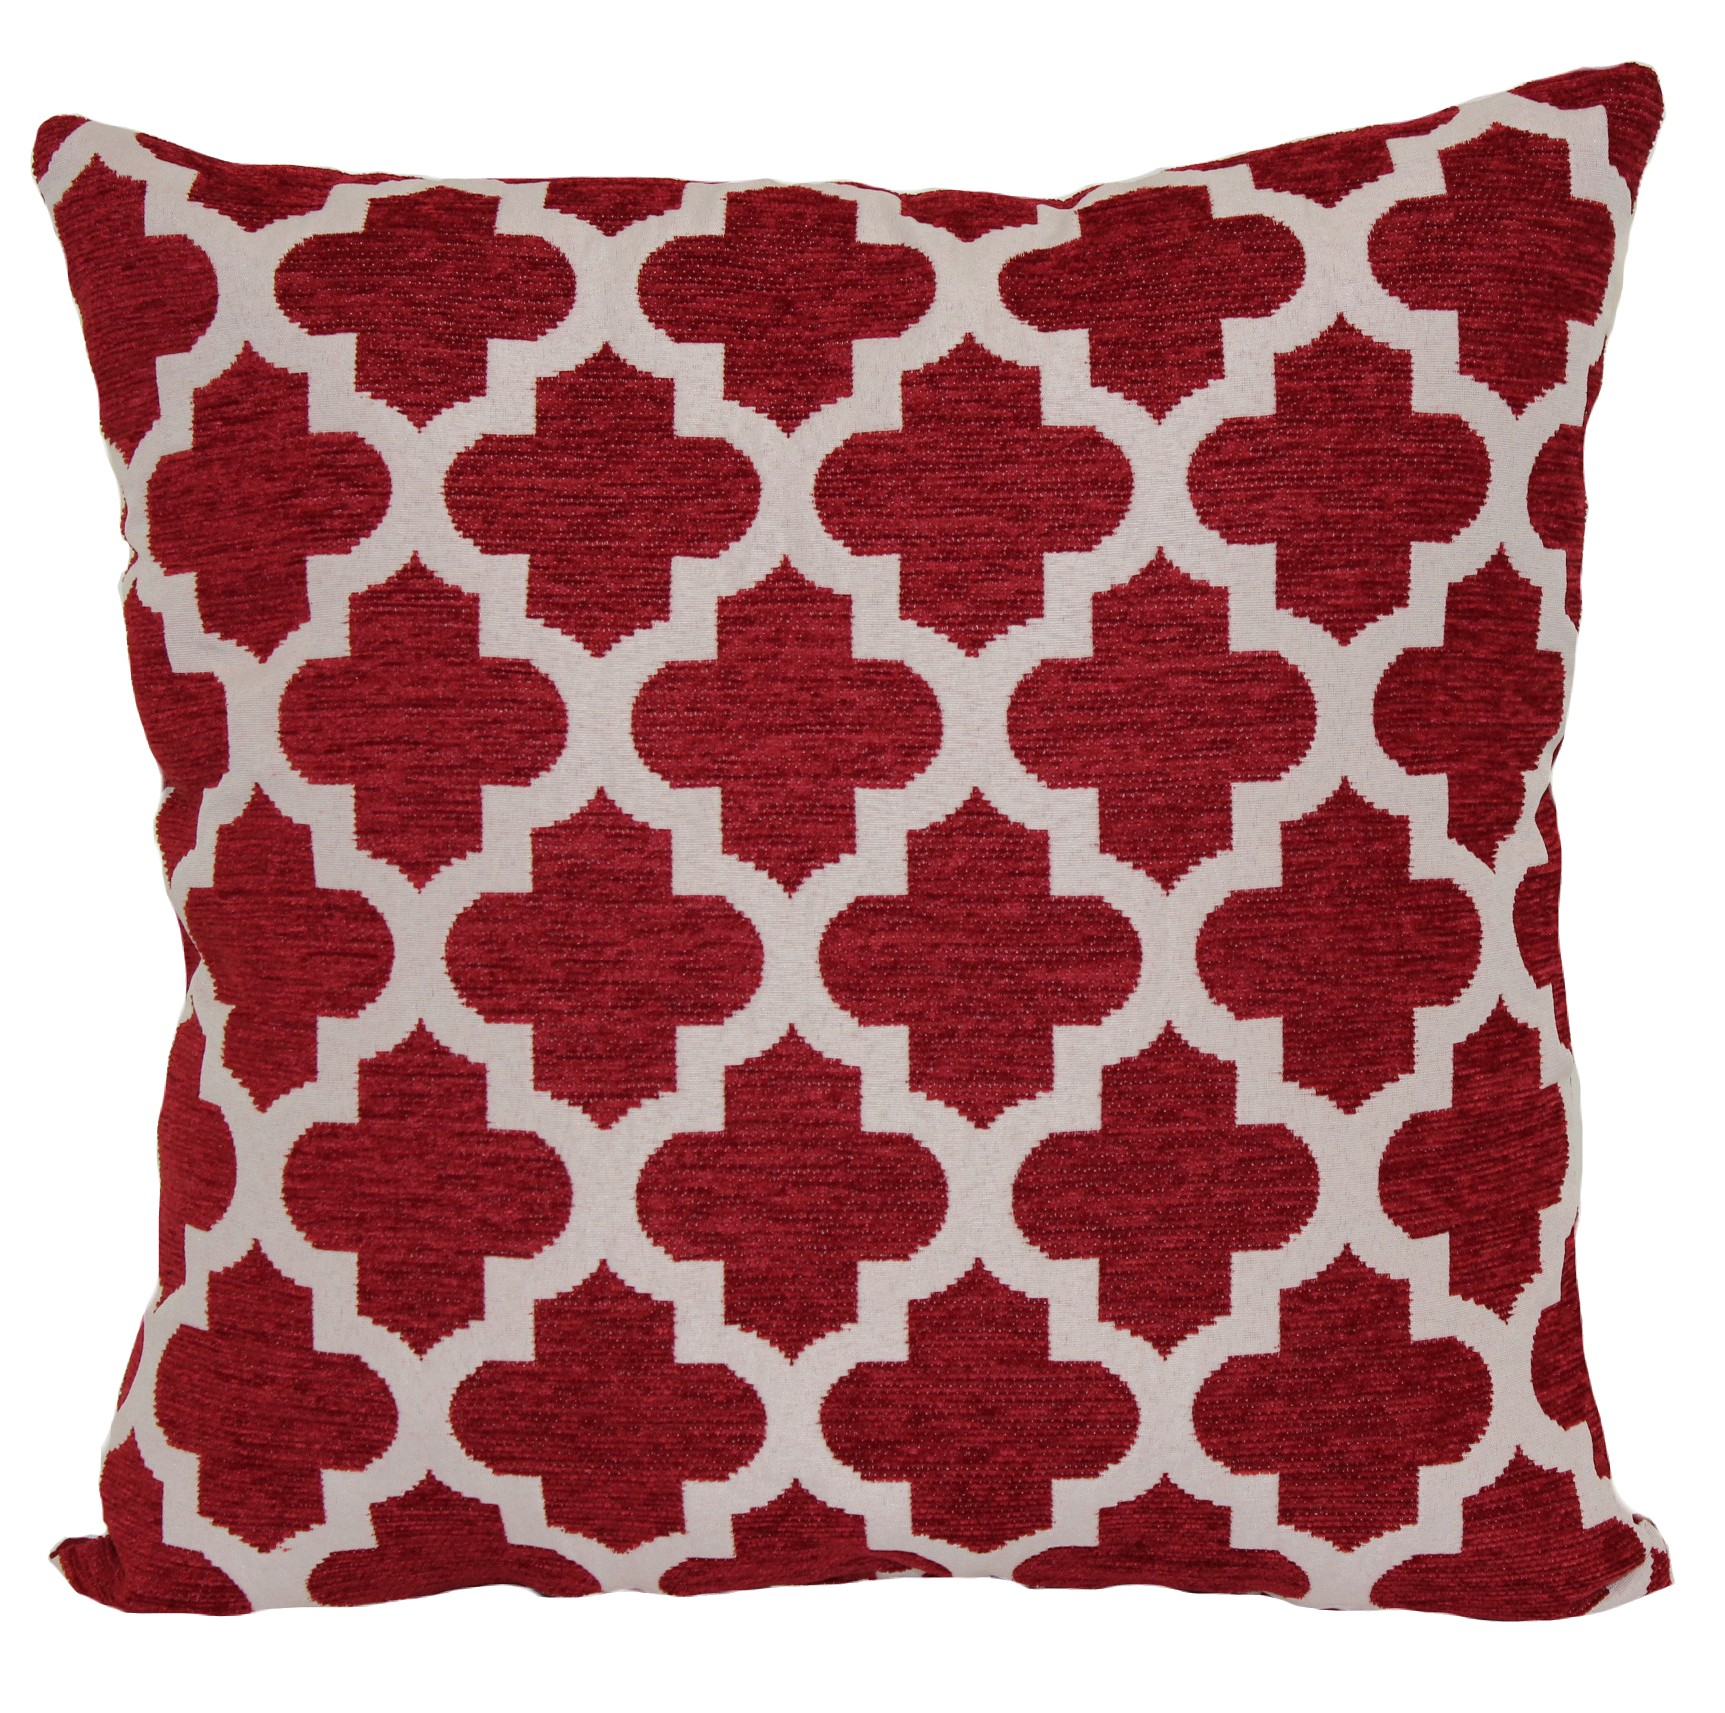 Decorative Pillows Kmart : Red Accent Decorative Pillow Kmart.com